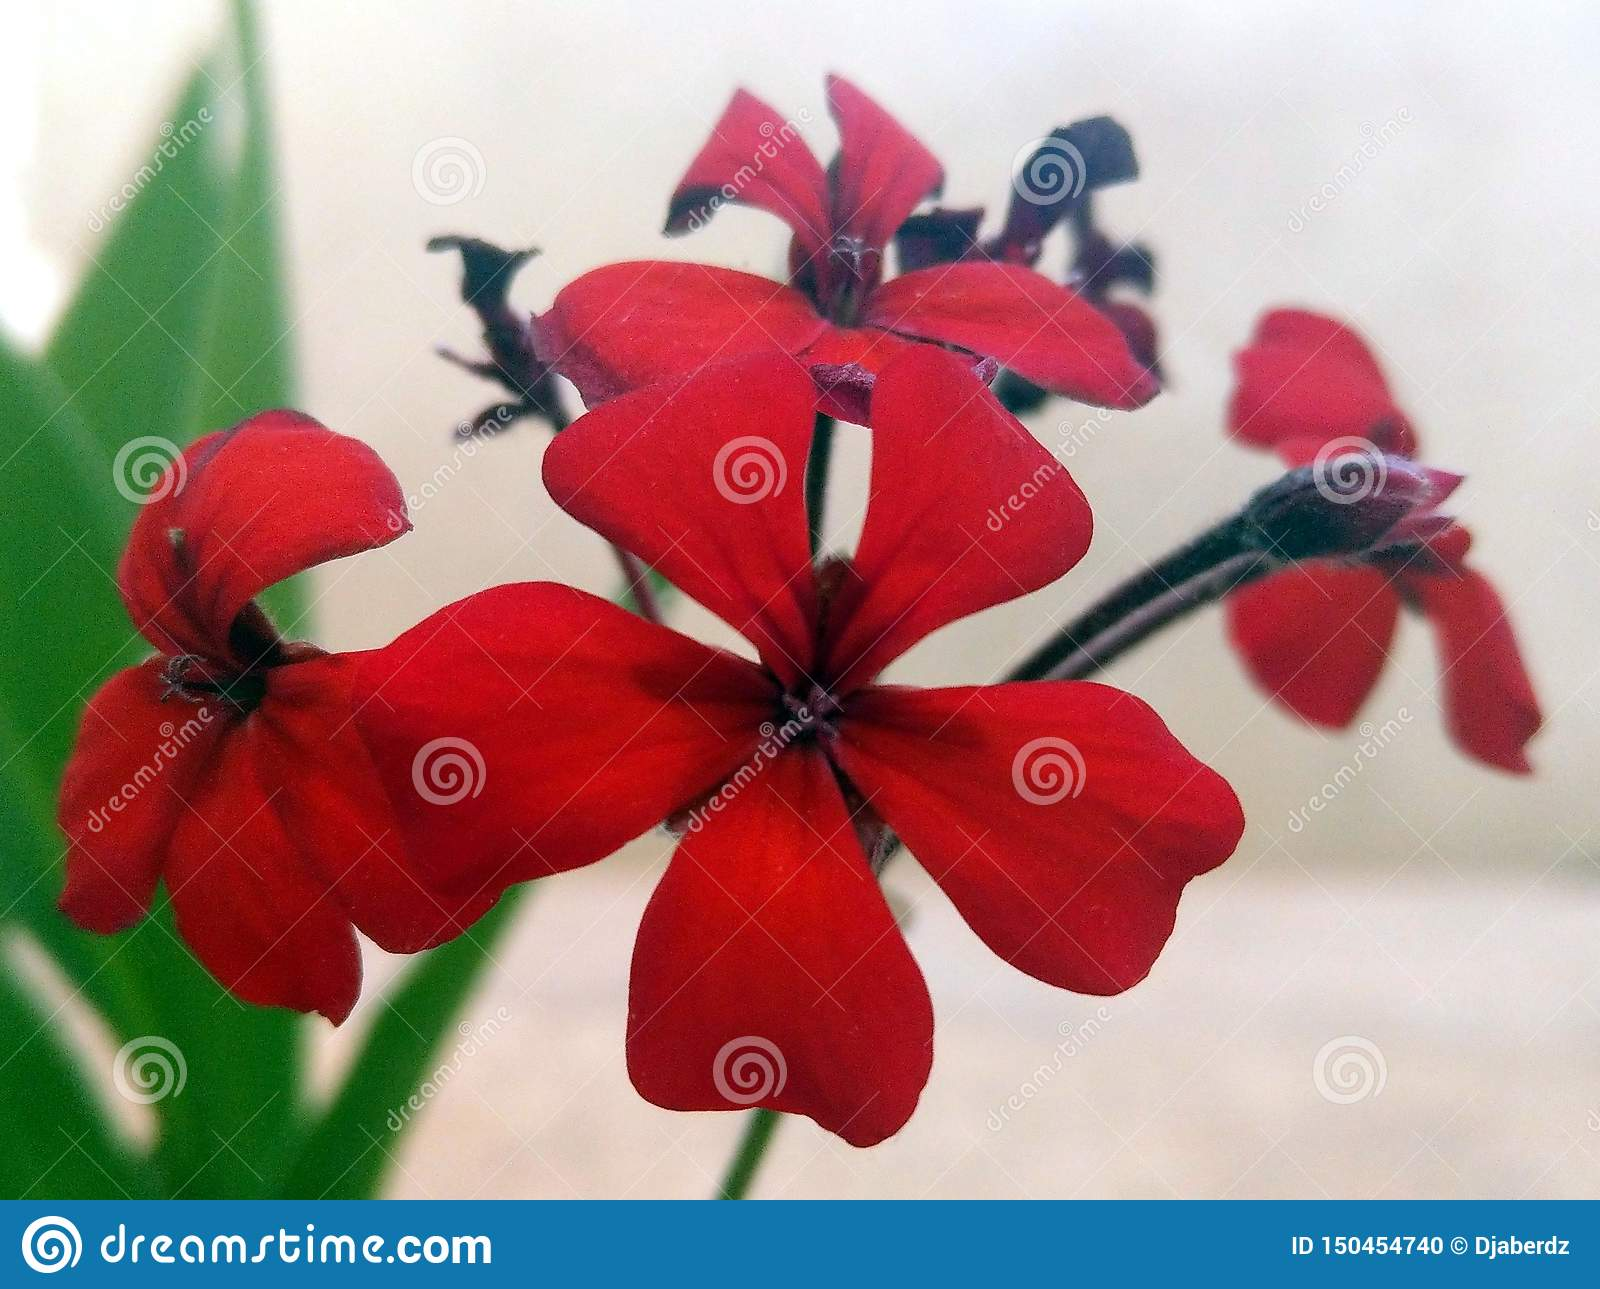 Red flowers with five petals